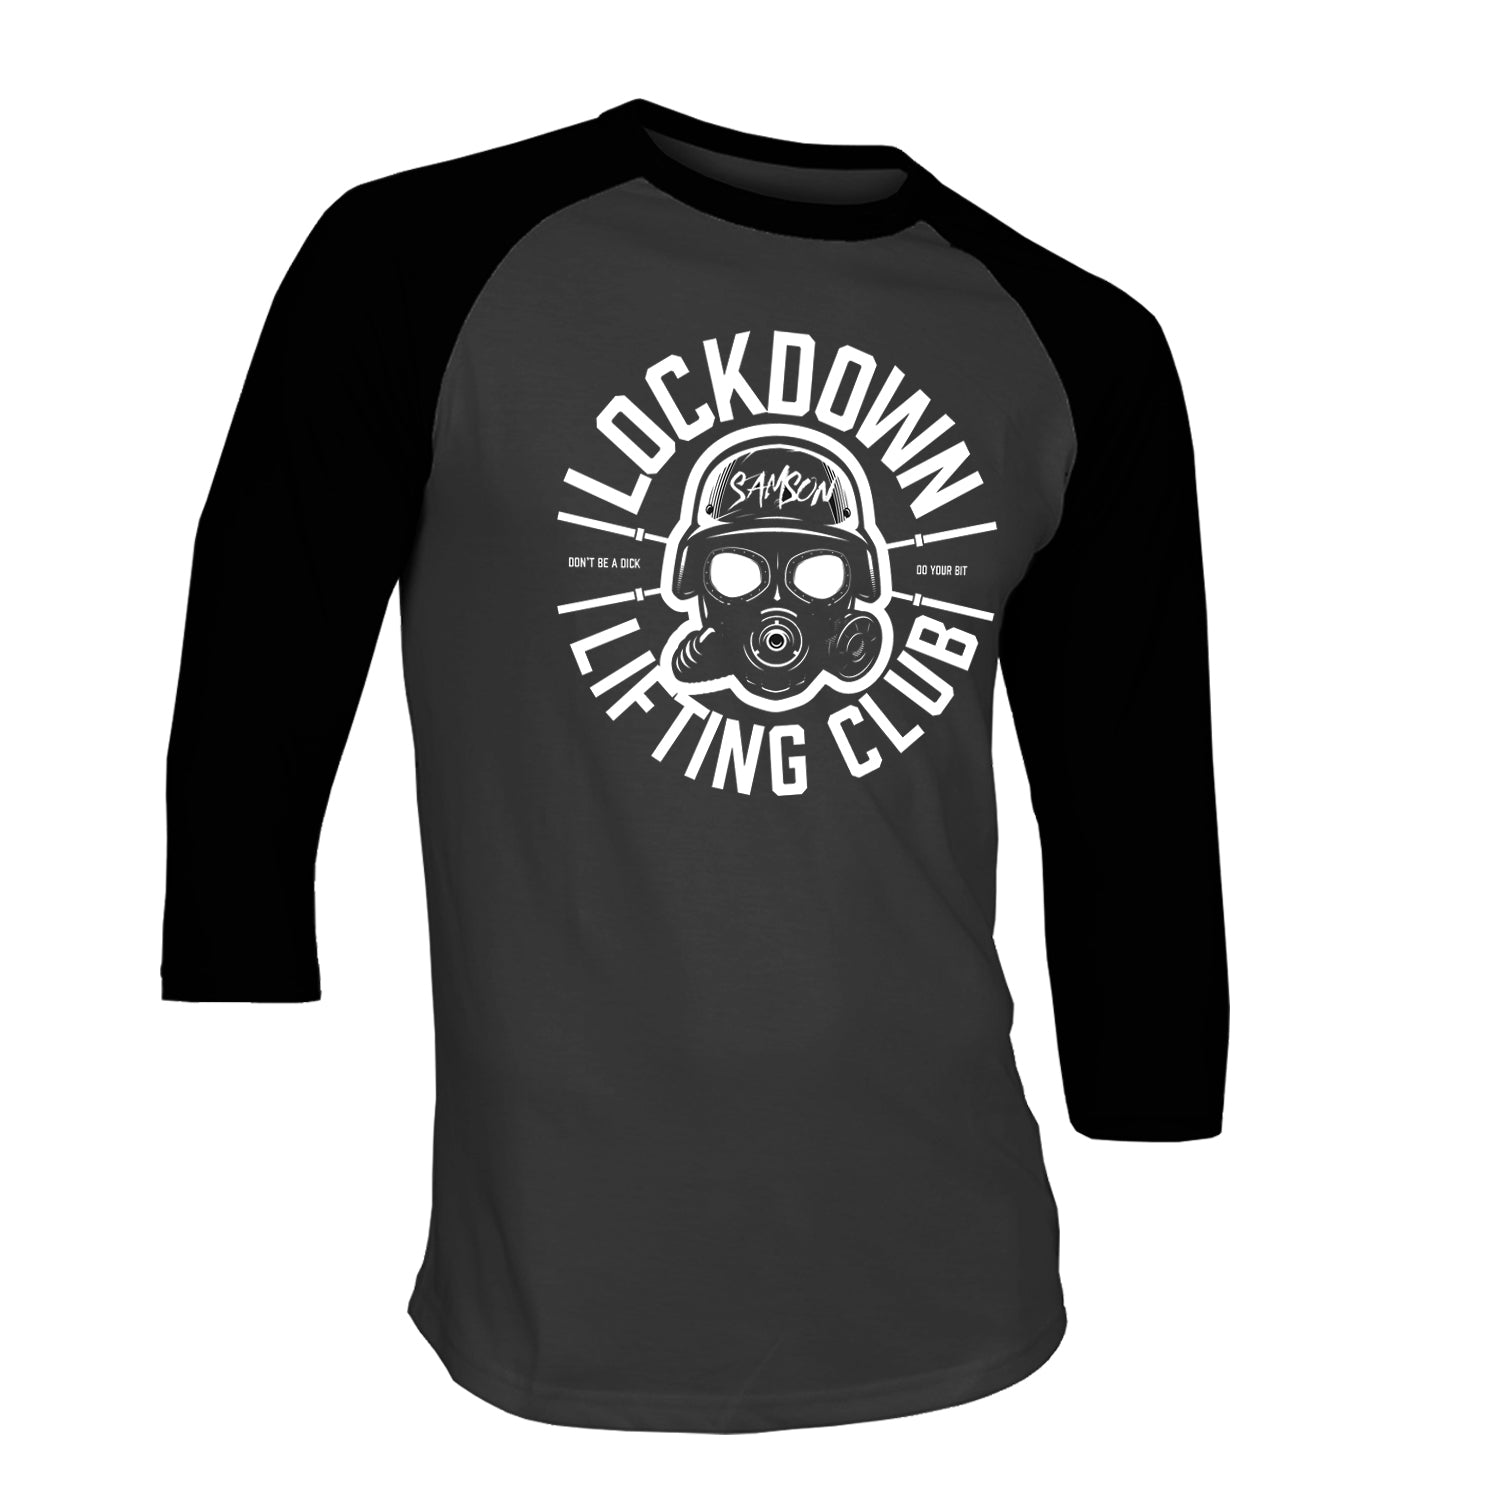 Lockdown Lifting Club - Baseball Tee